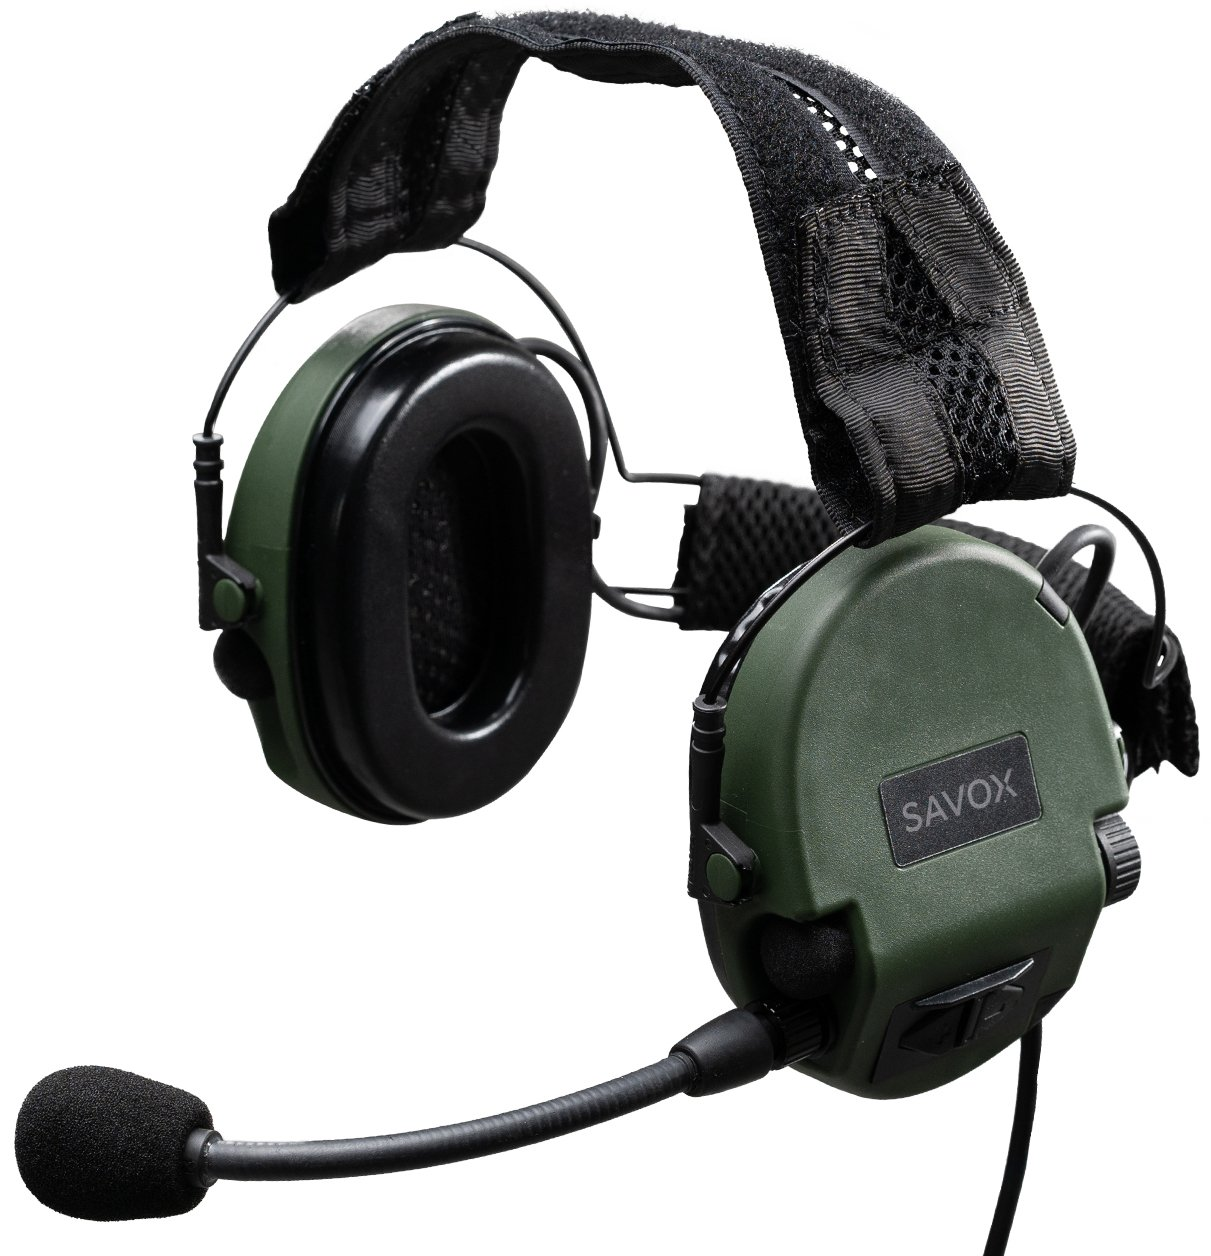 NOISE-COM_Olive Green_NB (1)